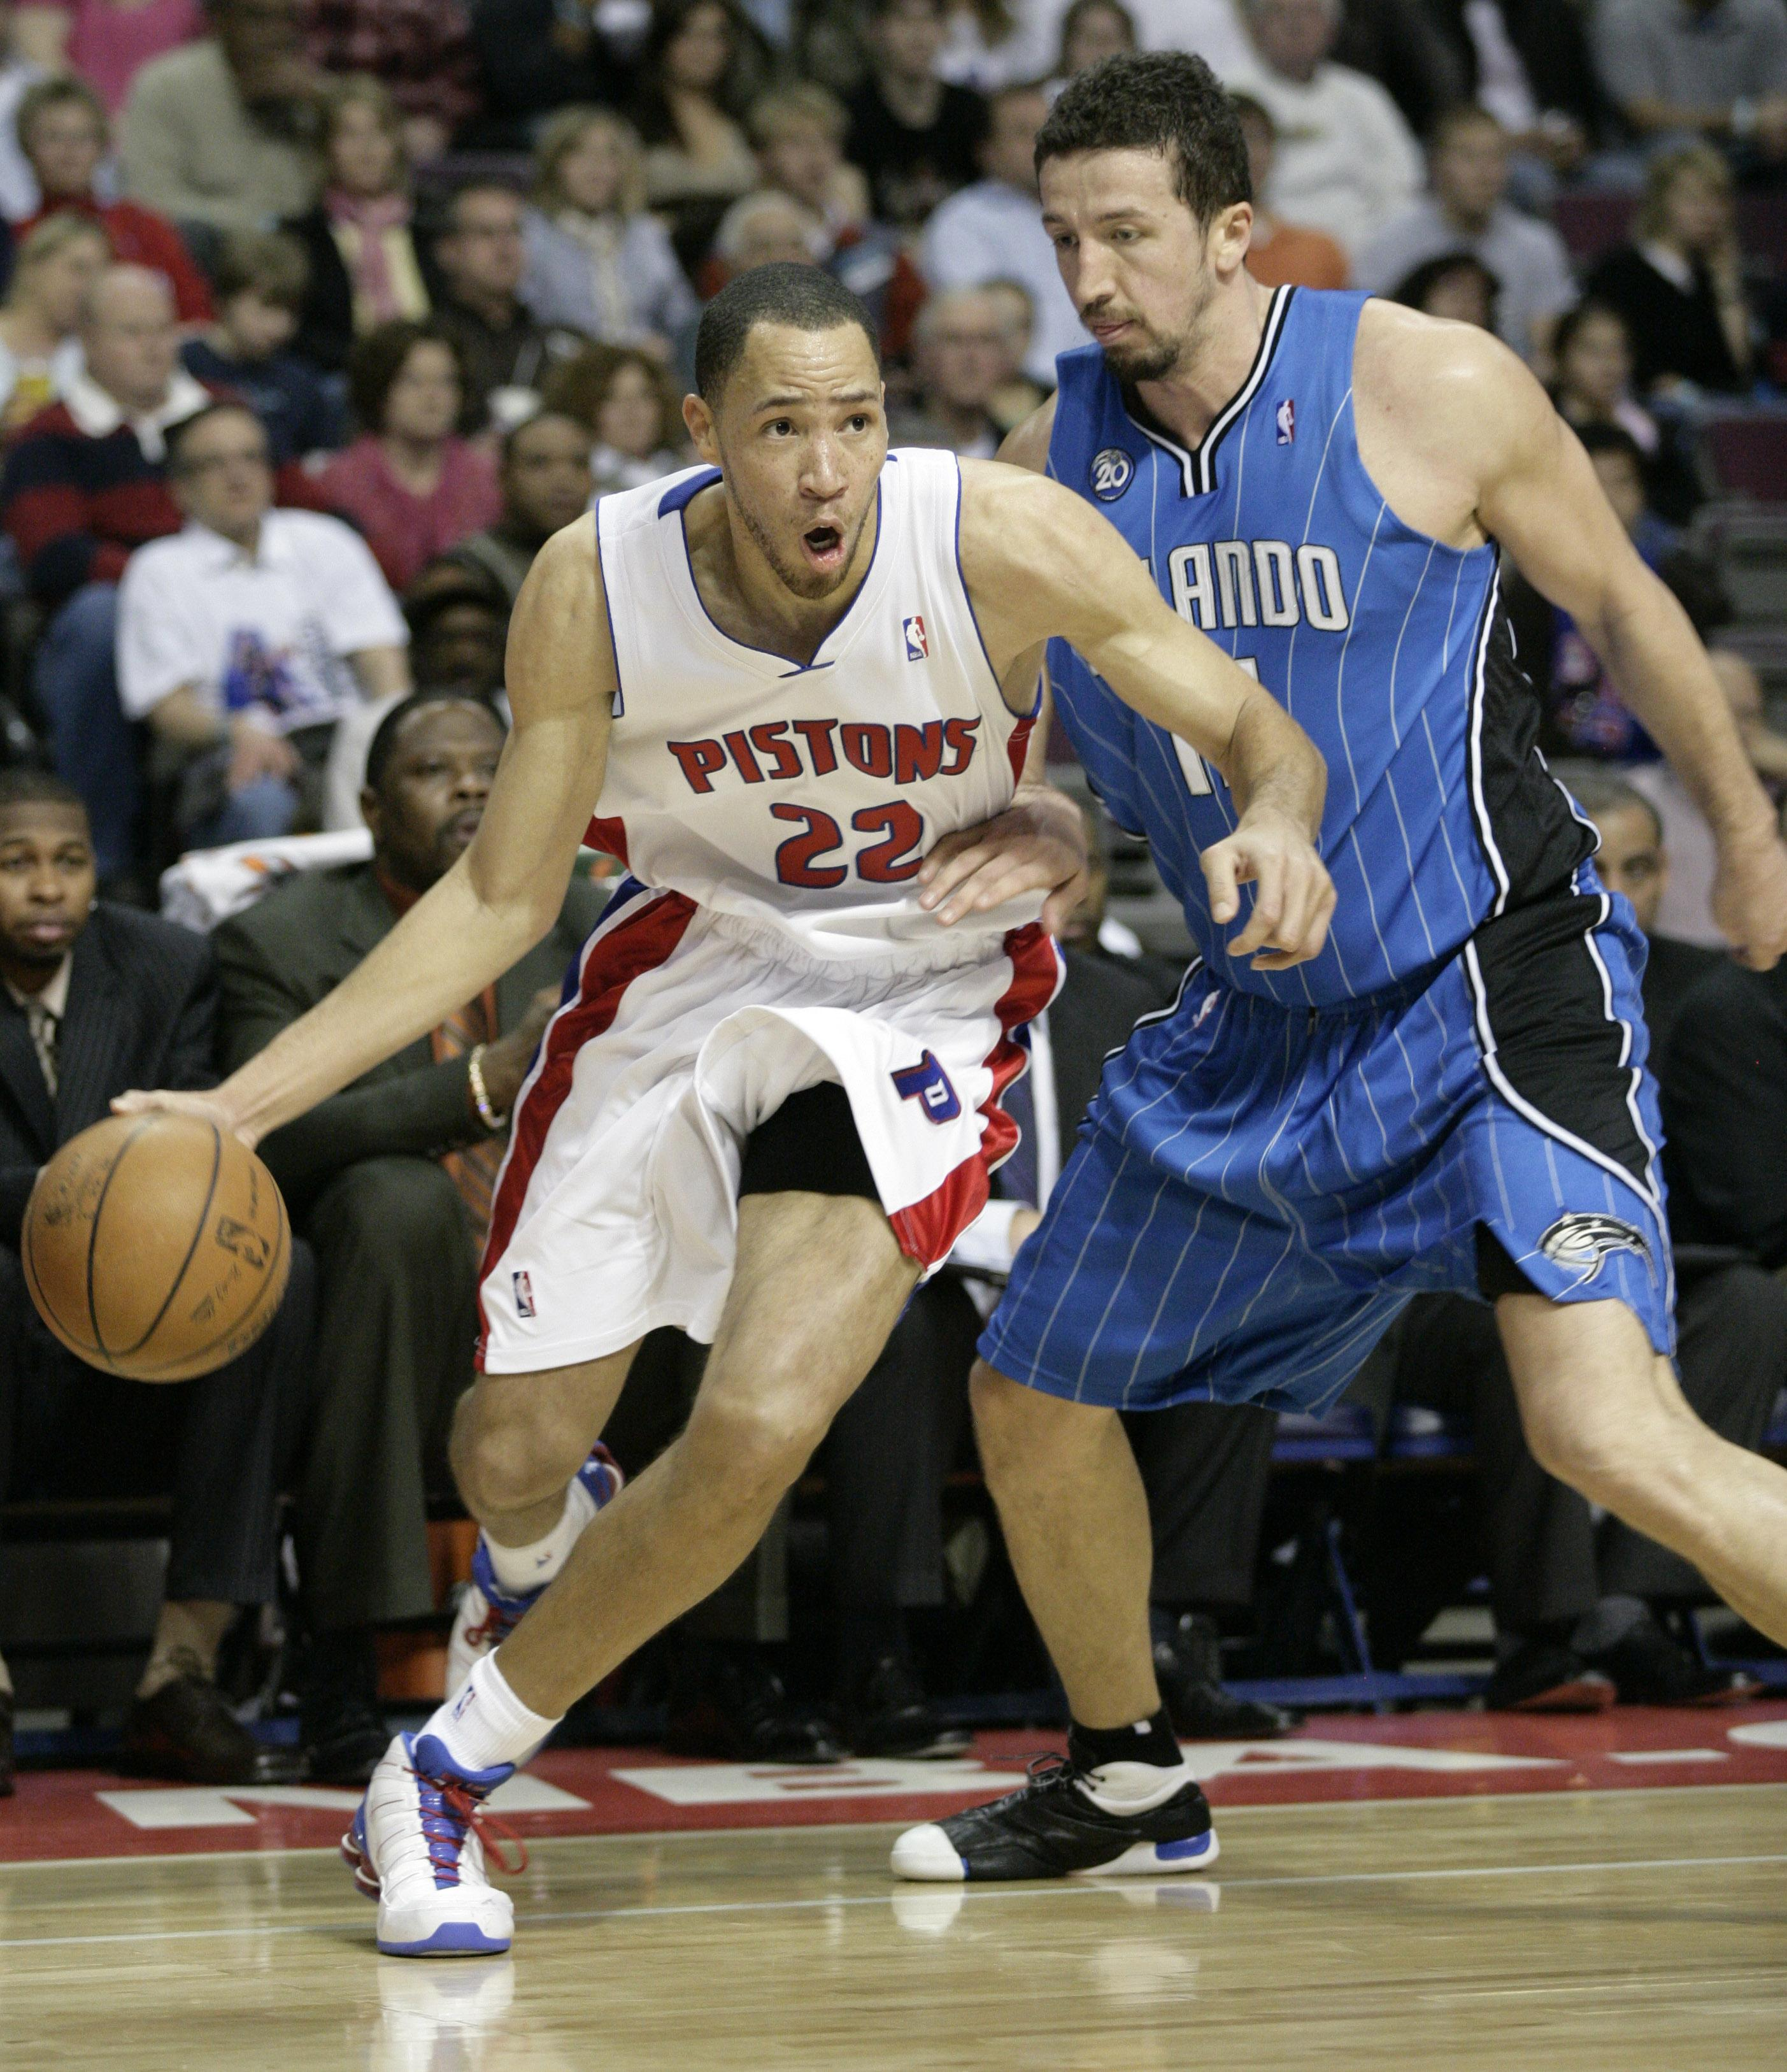 Detroit Pistons forward Tayshaun Prince, left, drives to the basket against Orlando Magic forward Hedo Turkoglu, of Turkey, in the second half of an N...